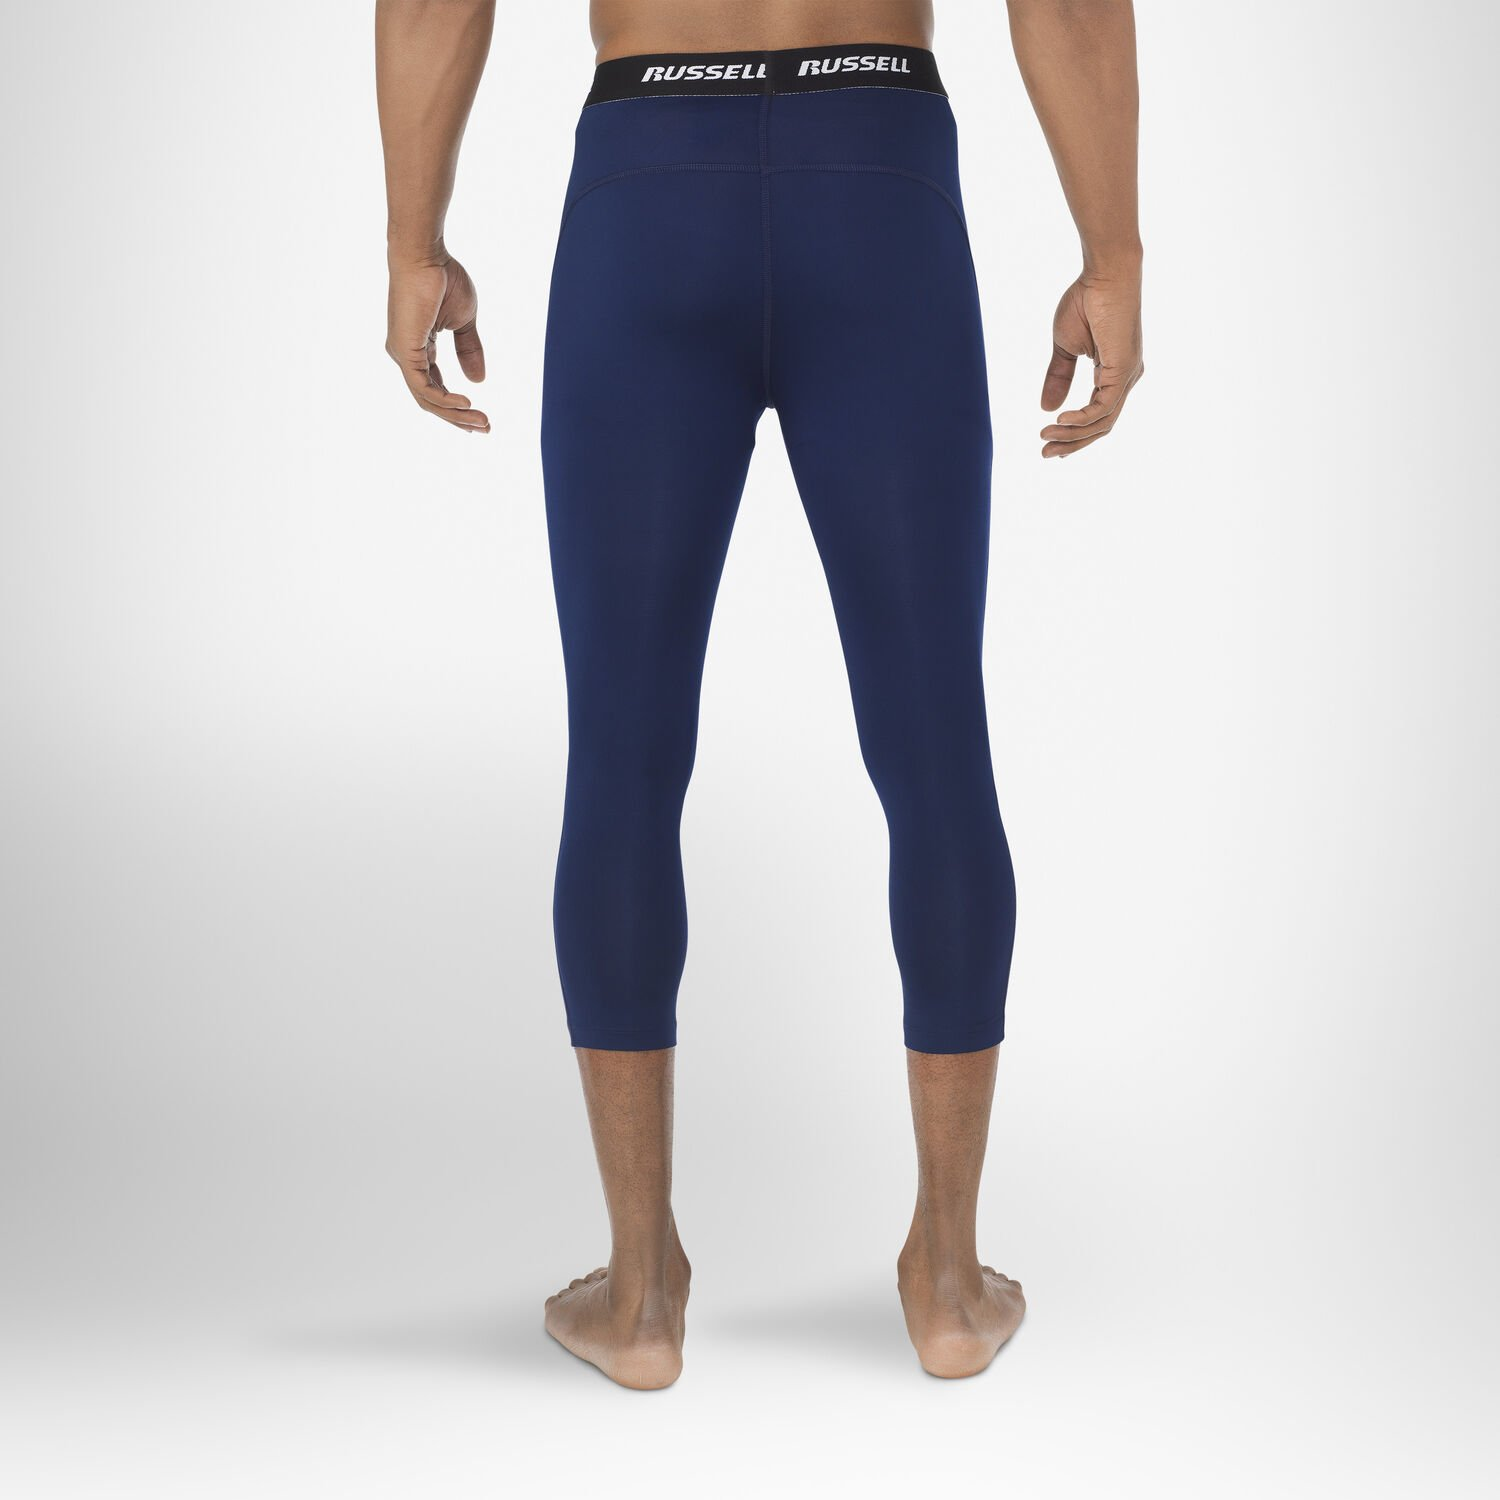 a00341cb3a Men's Dri-Power® 3/4 Compression Tights - Russell US | Russell Athletic